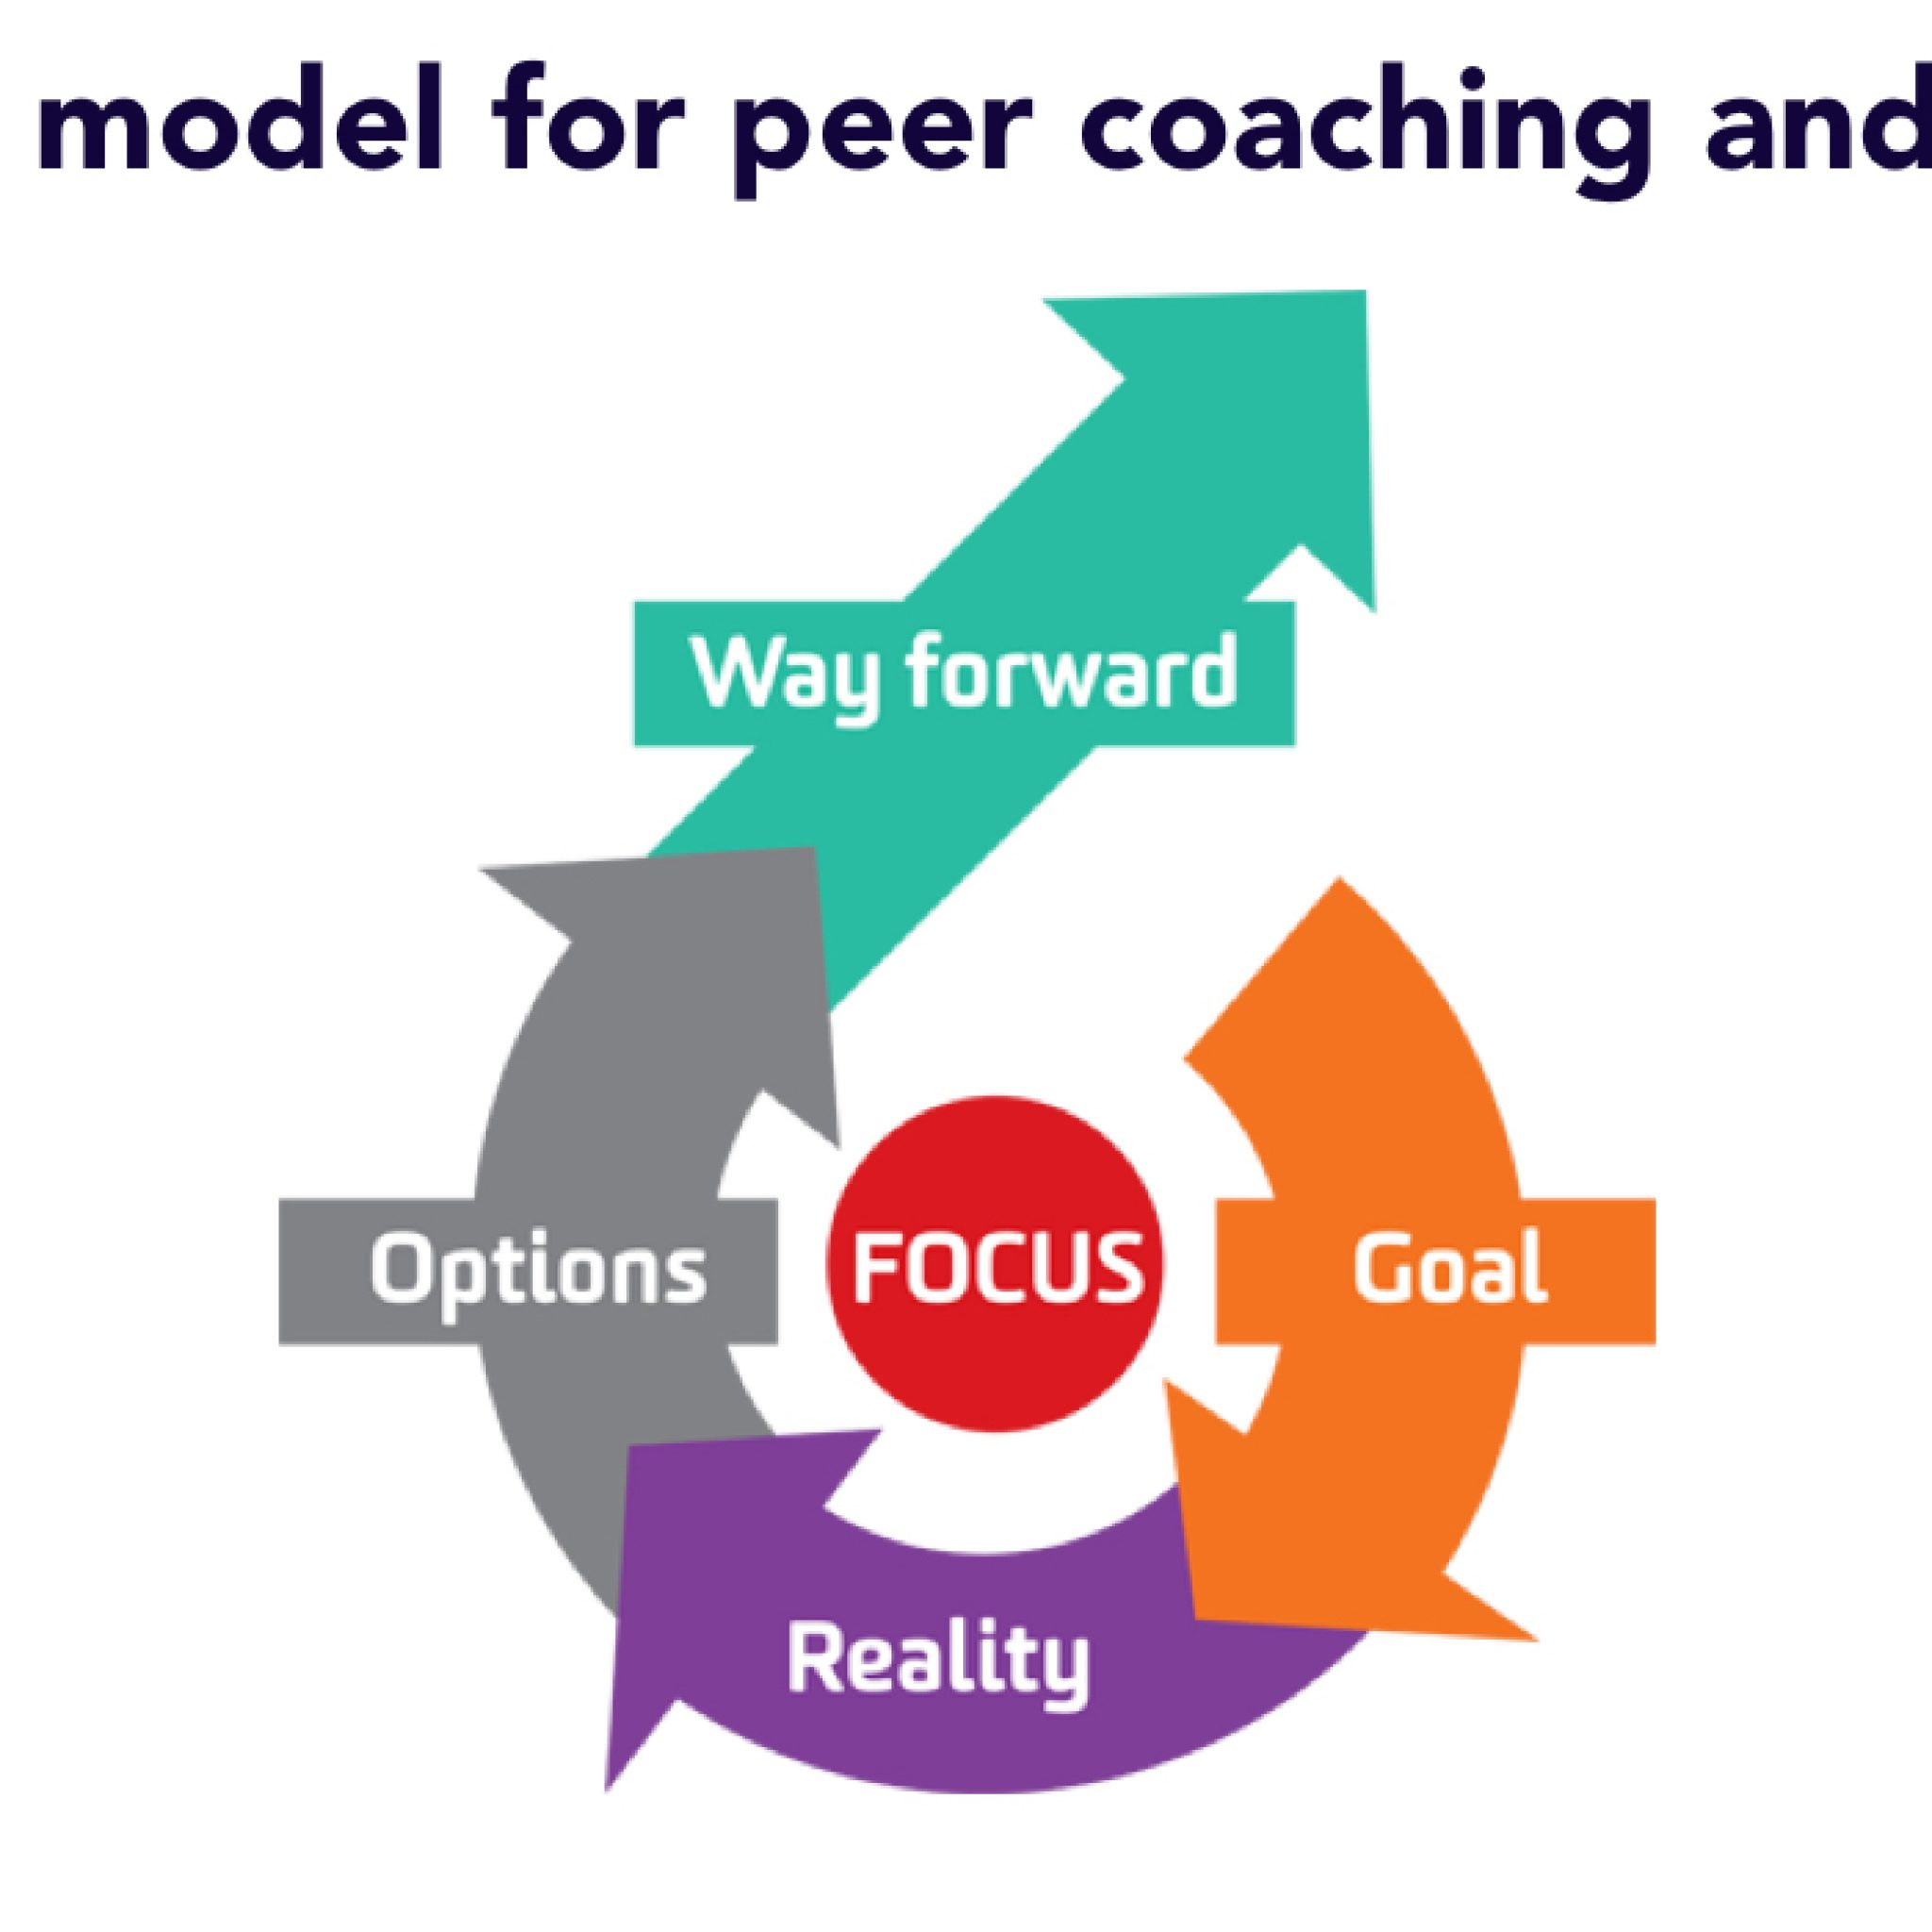 GROW model for peer coaching